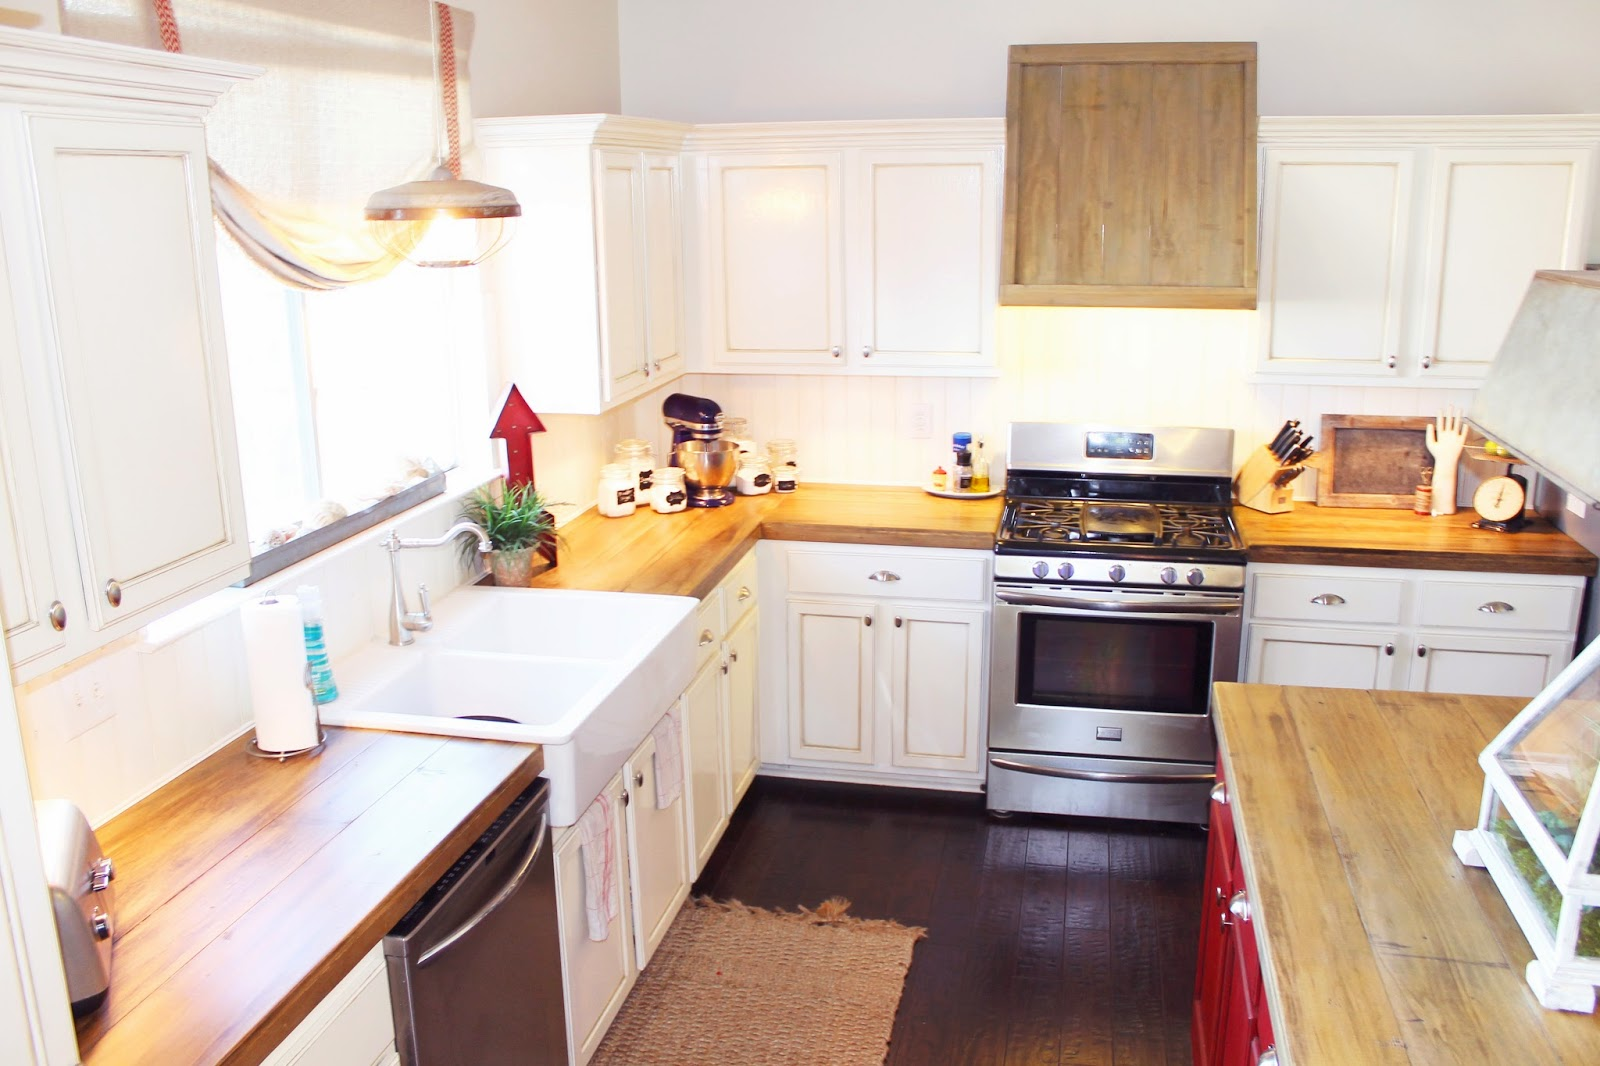 butcher countertop design grain your kitchen block wood charming for countertops custom island sale edge brooks